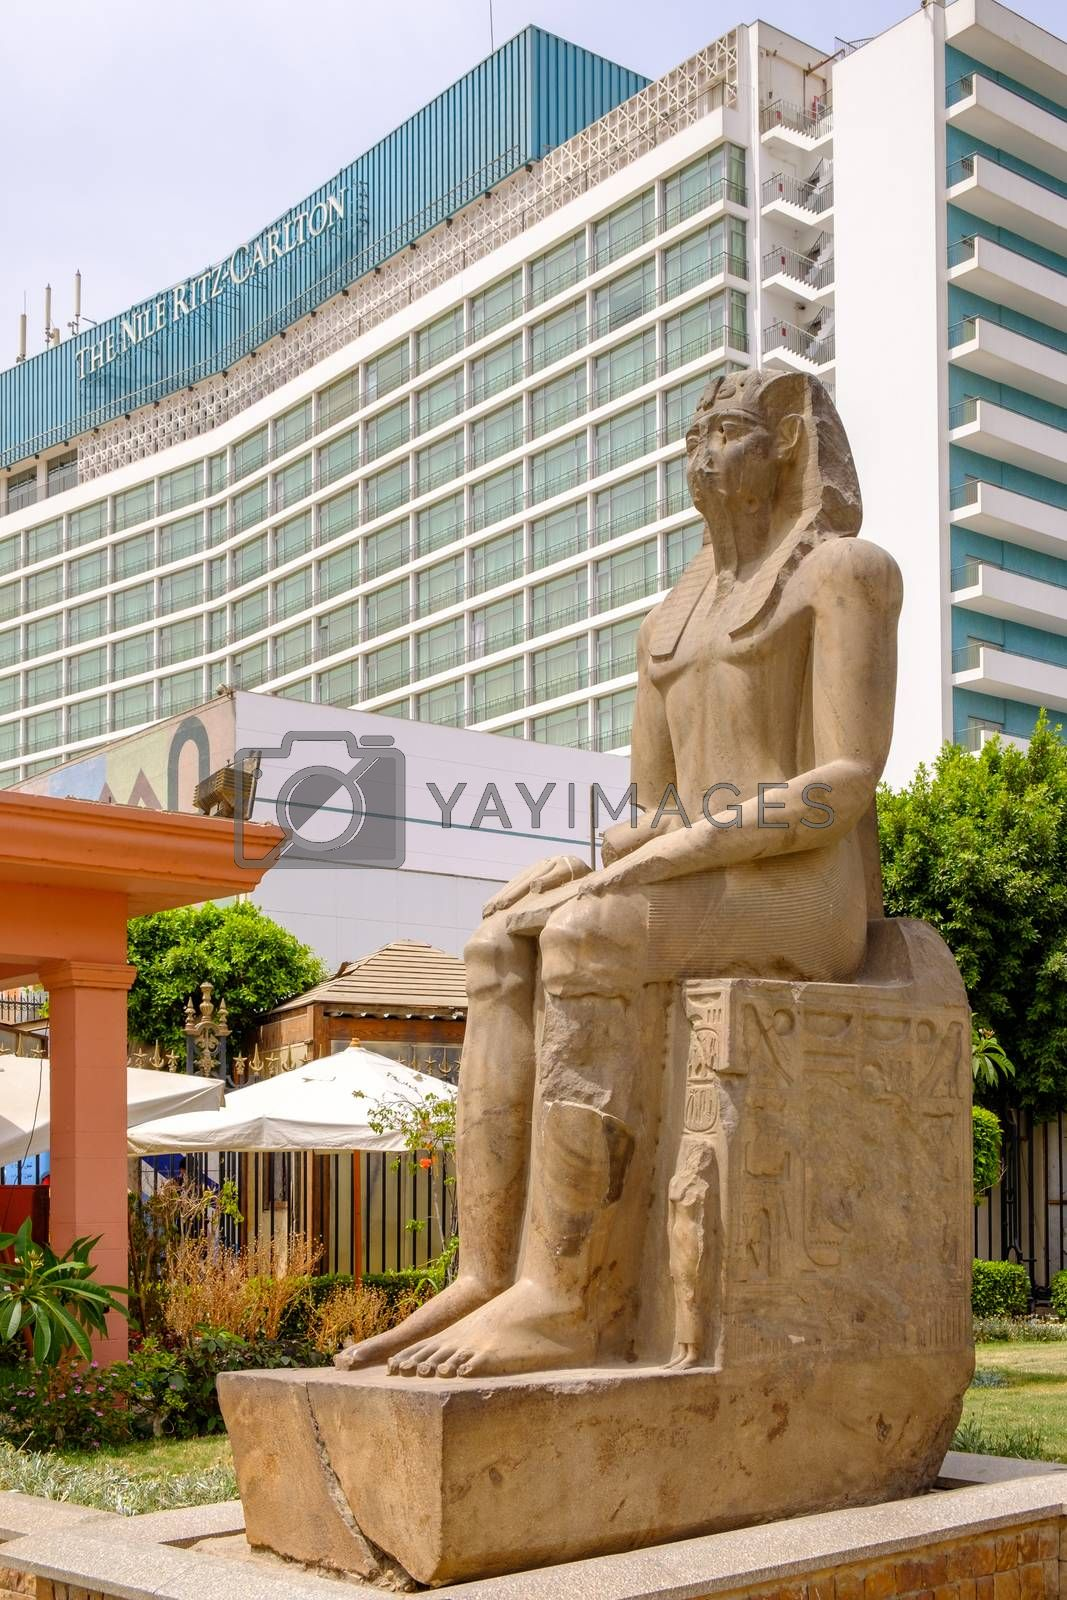 Cairo / Egypt - May 25th 2019: View of the Ritz-Carlton luxury hotel in Cairo from the grounds of the iconic Egyptian Museum in Cairo, Egypt